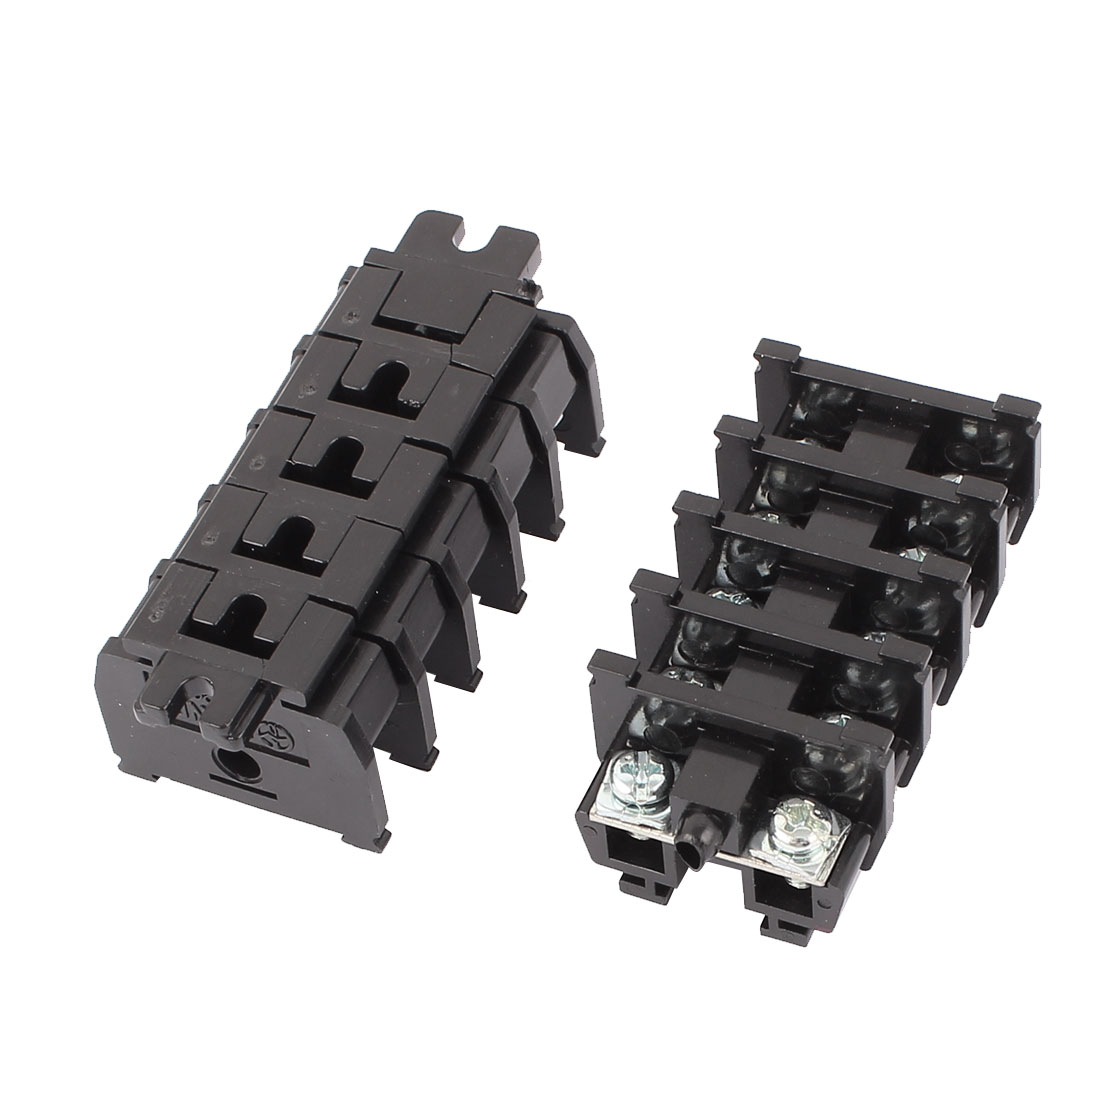 10Pcs TBC-20A 600V 20A 10 Screw Terminals Rail Mounted Block Inner Adapter Connector